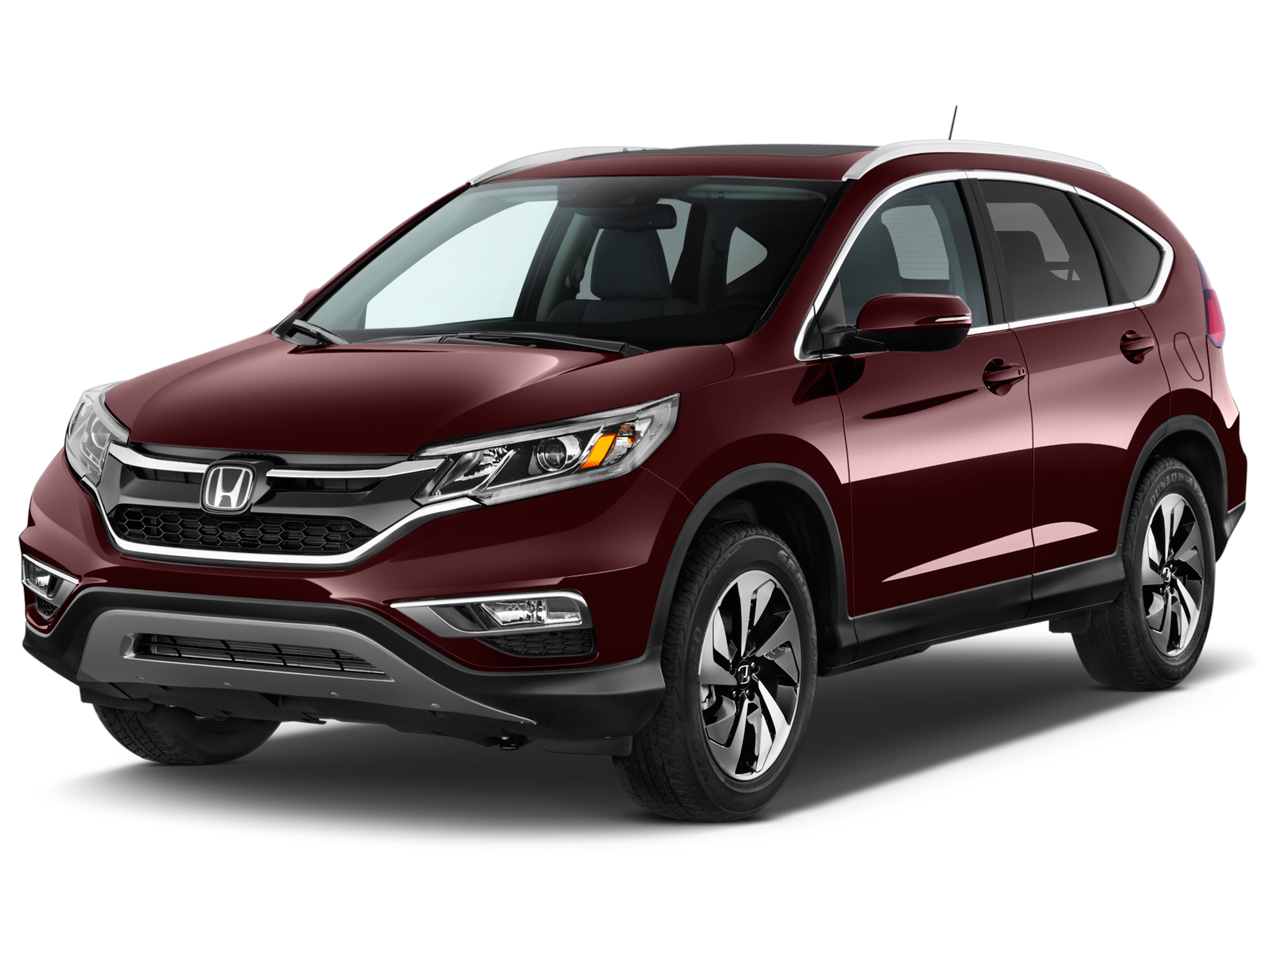 Toyota rav4 vs honda cr v compare cars for Truecar com honda crv